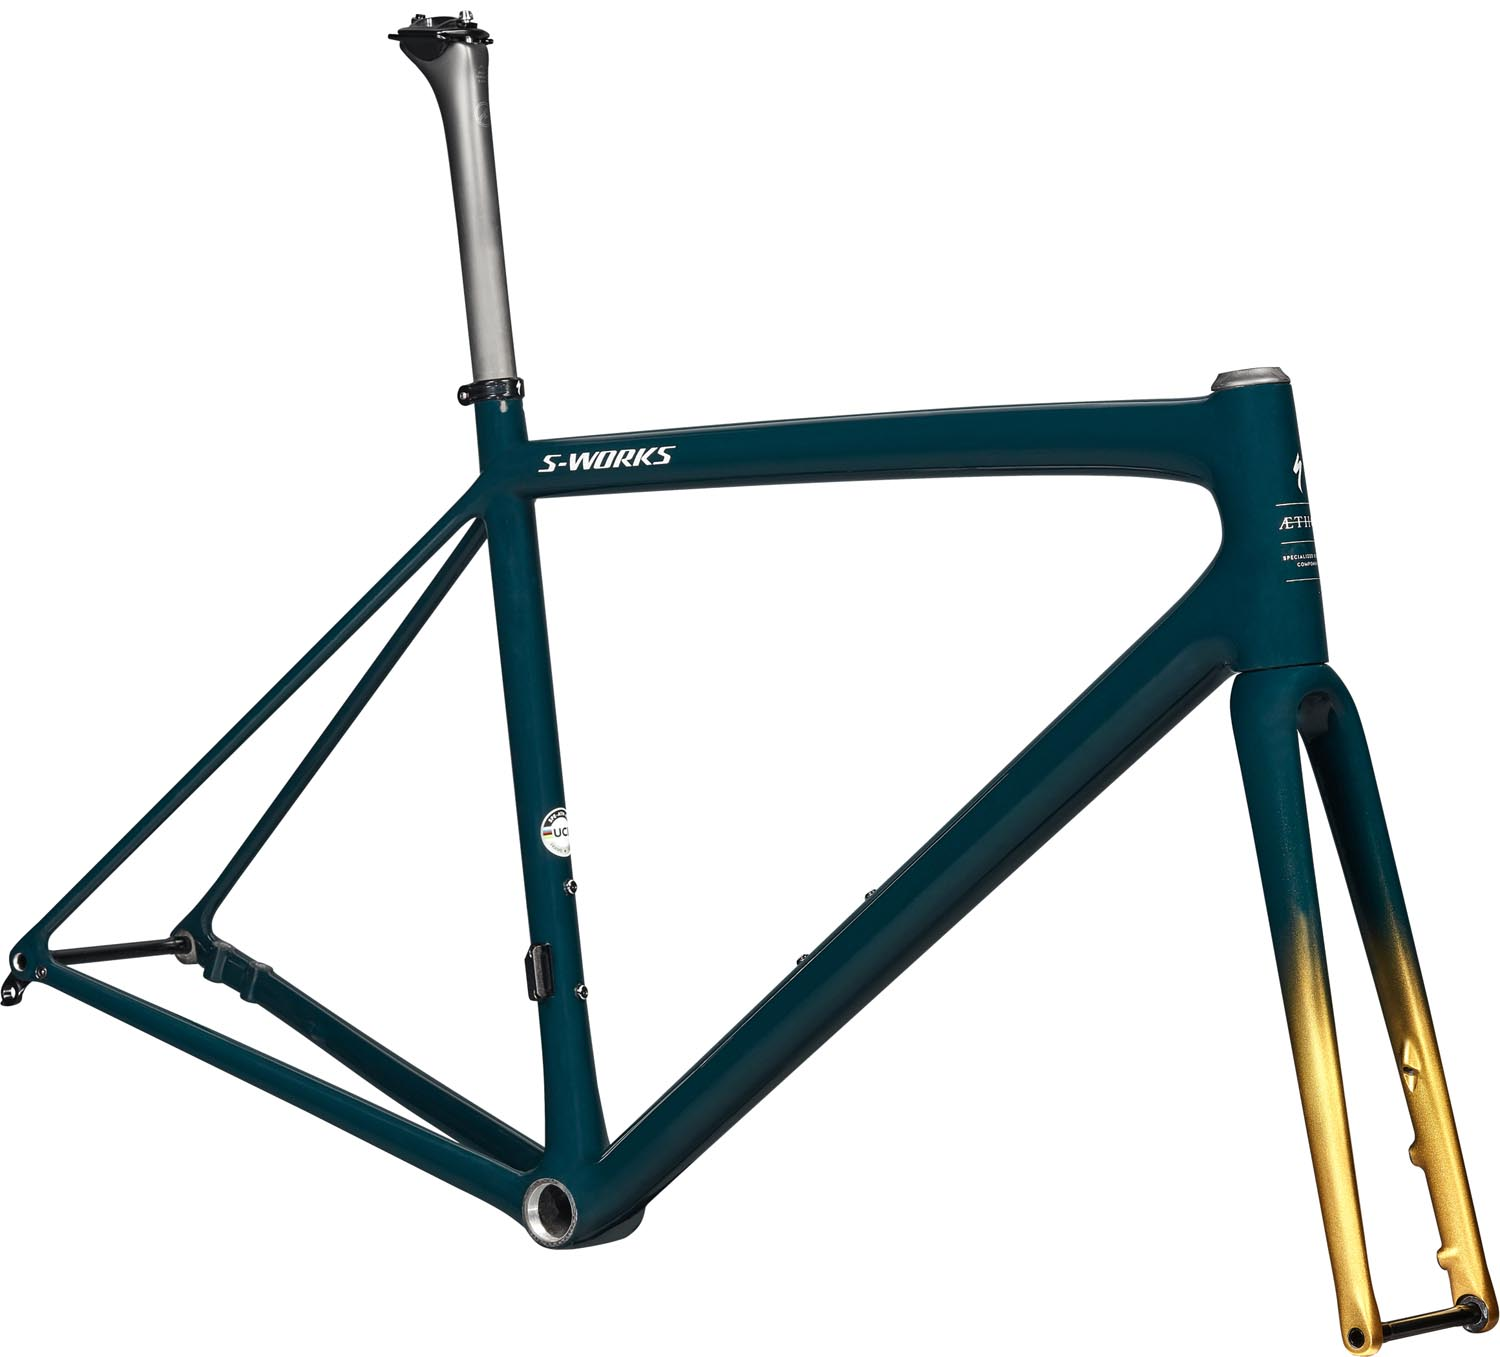 rám silničního kola Specialized S-Works Aethos 2021 gloss forest green/gold